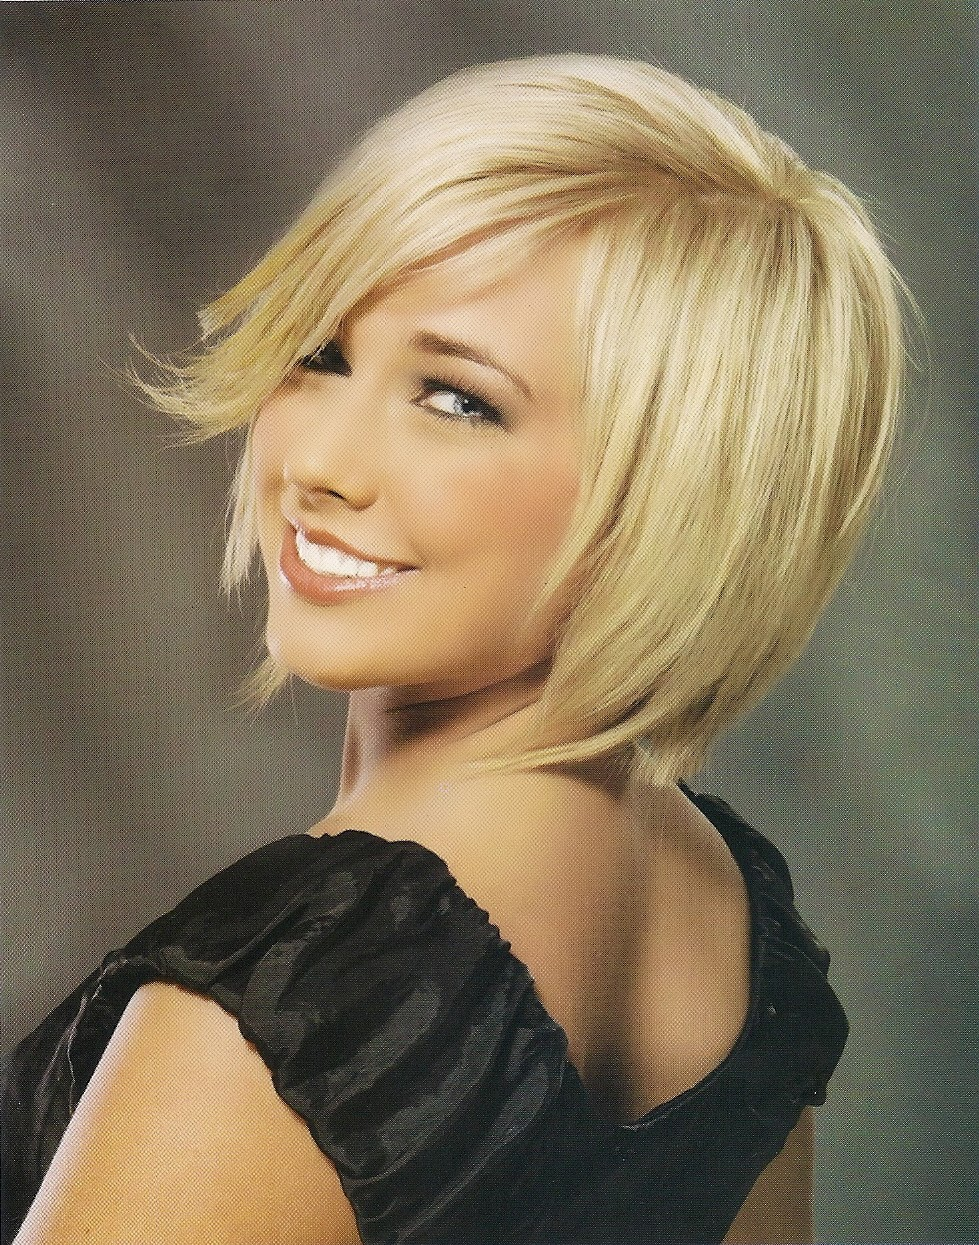 CHIN LENGTH HAIRSTYLES 2012: Short layered hairstyle